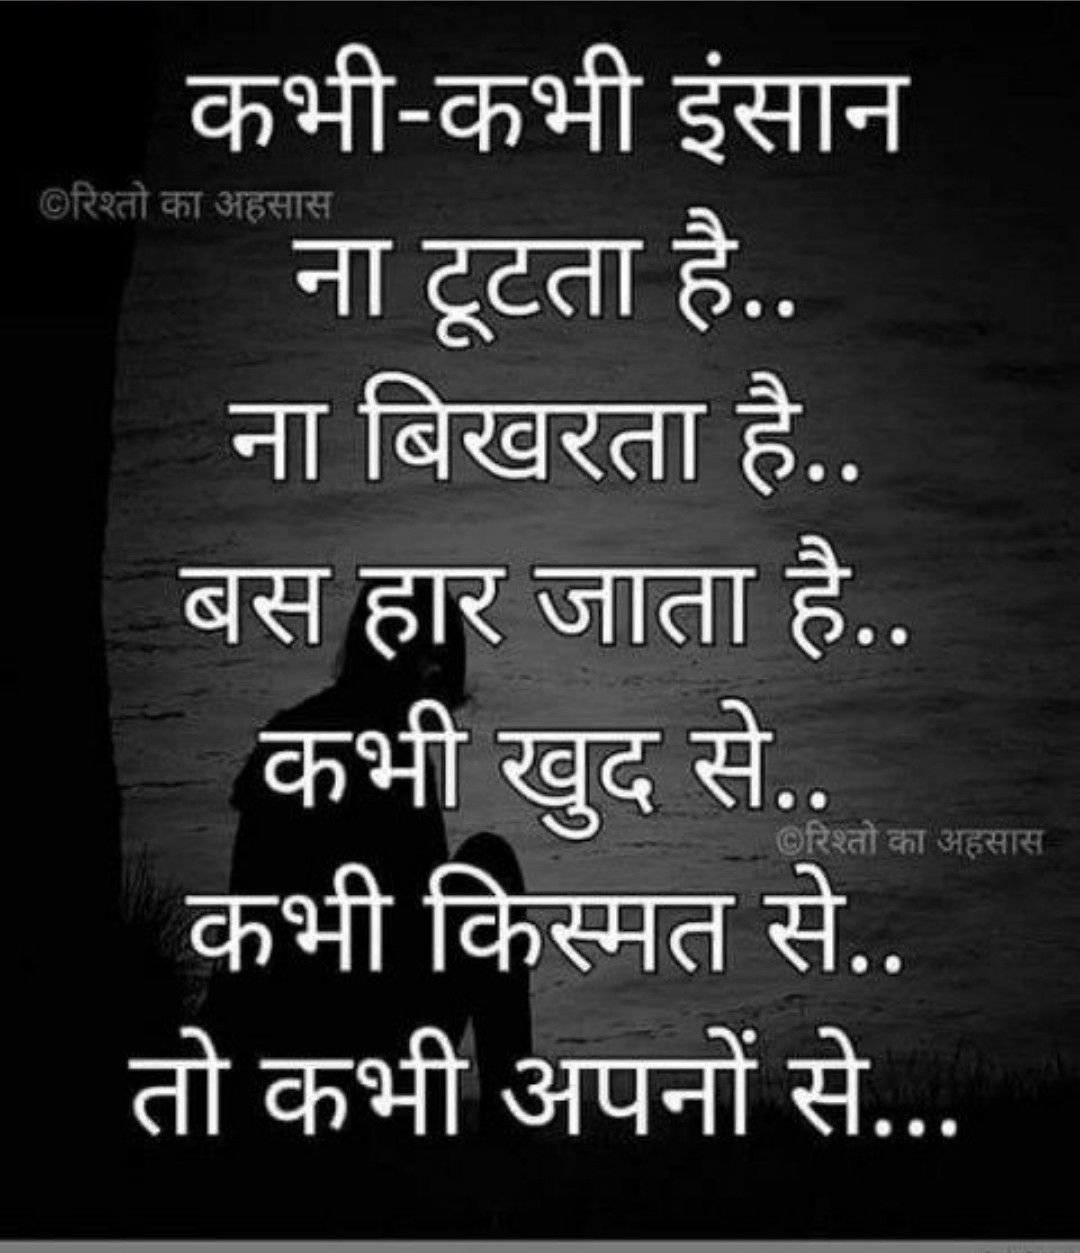 Pin By Bhaveshmakwana On Rks Hindi Good Morning Quotes Friendship Quotes In Hindi Good Thoughts Quotes